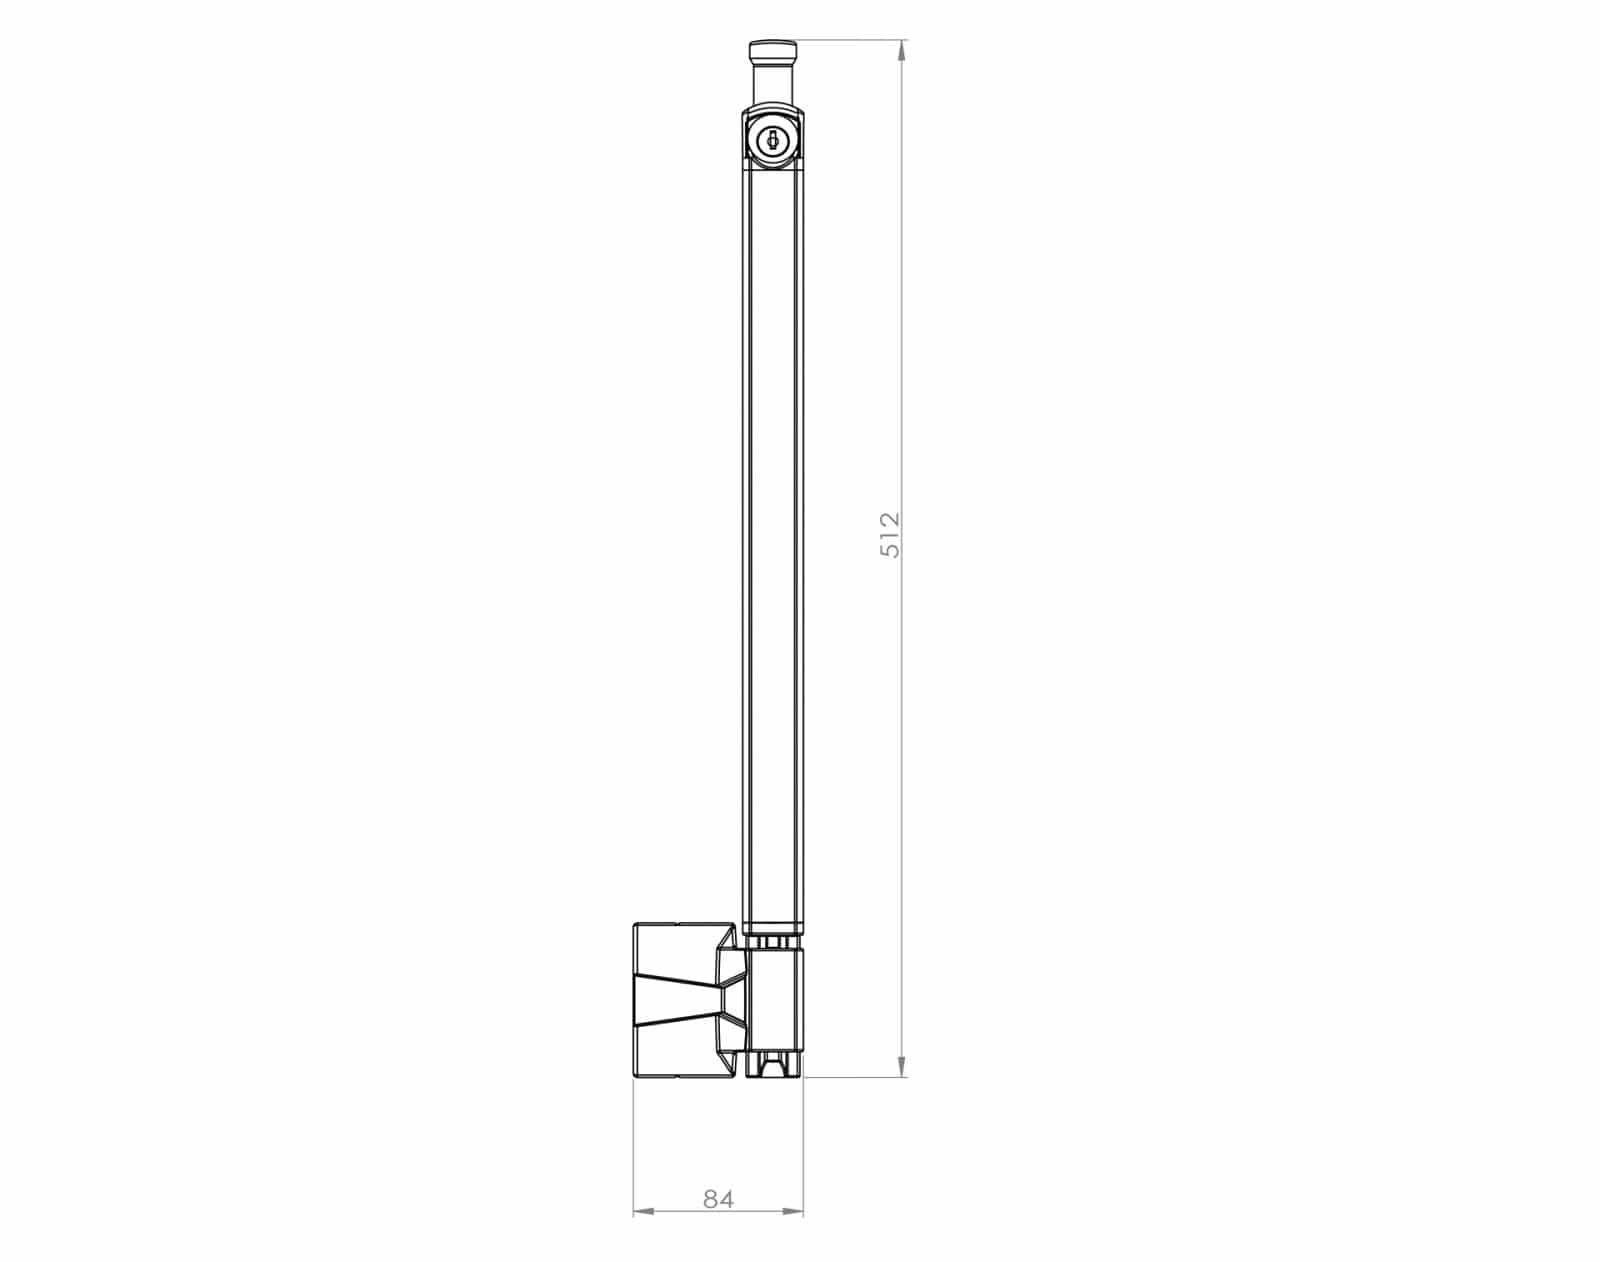 Max Safety Gate DPL1000 dimensions